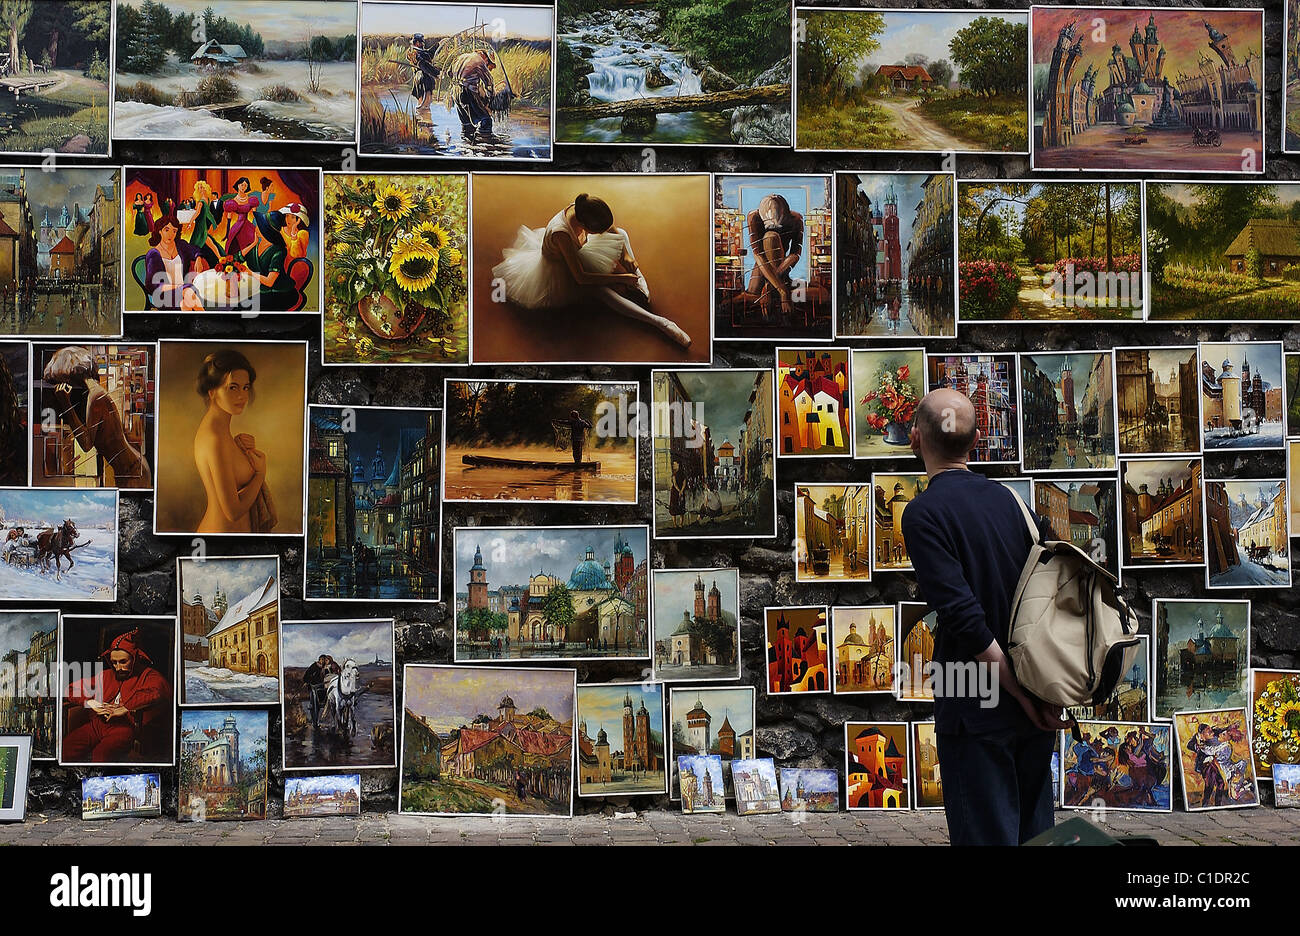 Poland Lesser Poland region Krakow old town (Stare Miasto) paintings of amateurs painters hung on the walls of the - Stock Image